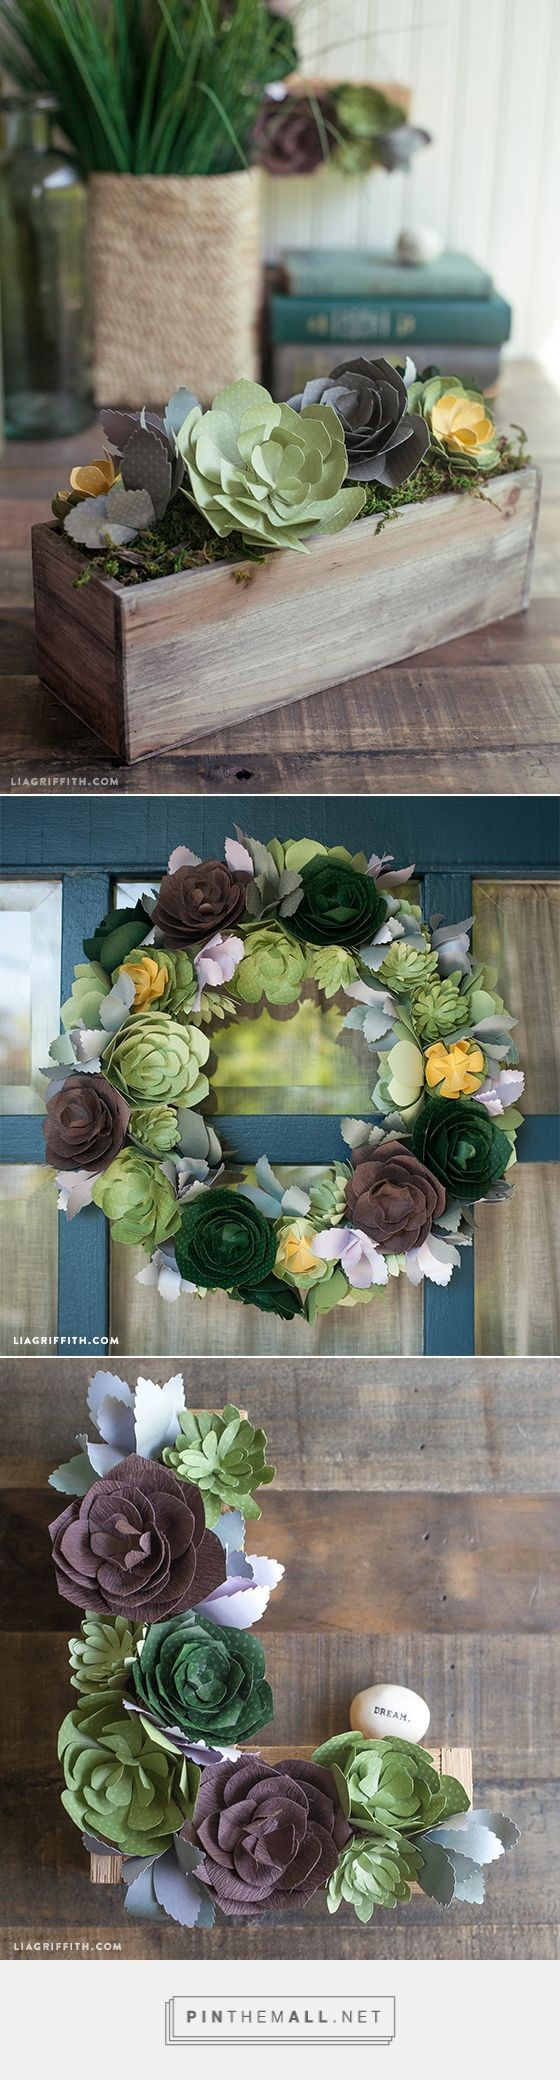 136 best paper flowers images on pinterest paper flowers diy patterns and tutorial for simple paper succulents paper flowers for weddingorigami izmirmasajfo